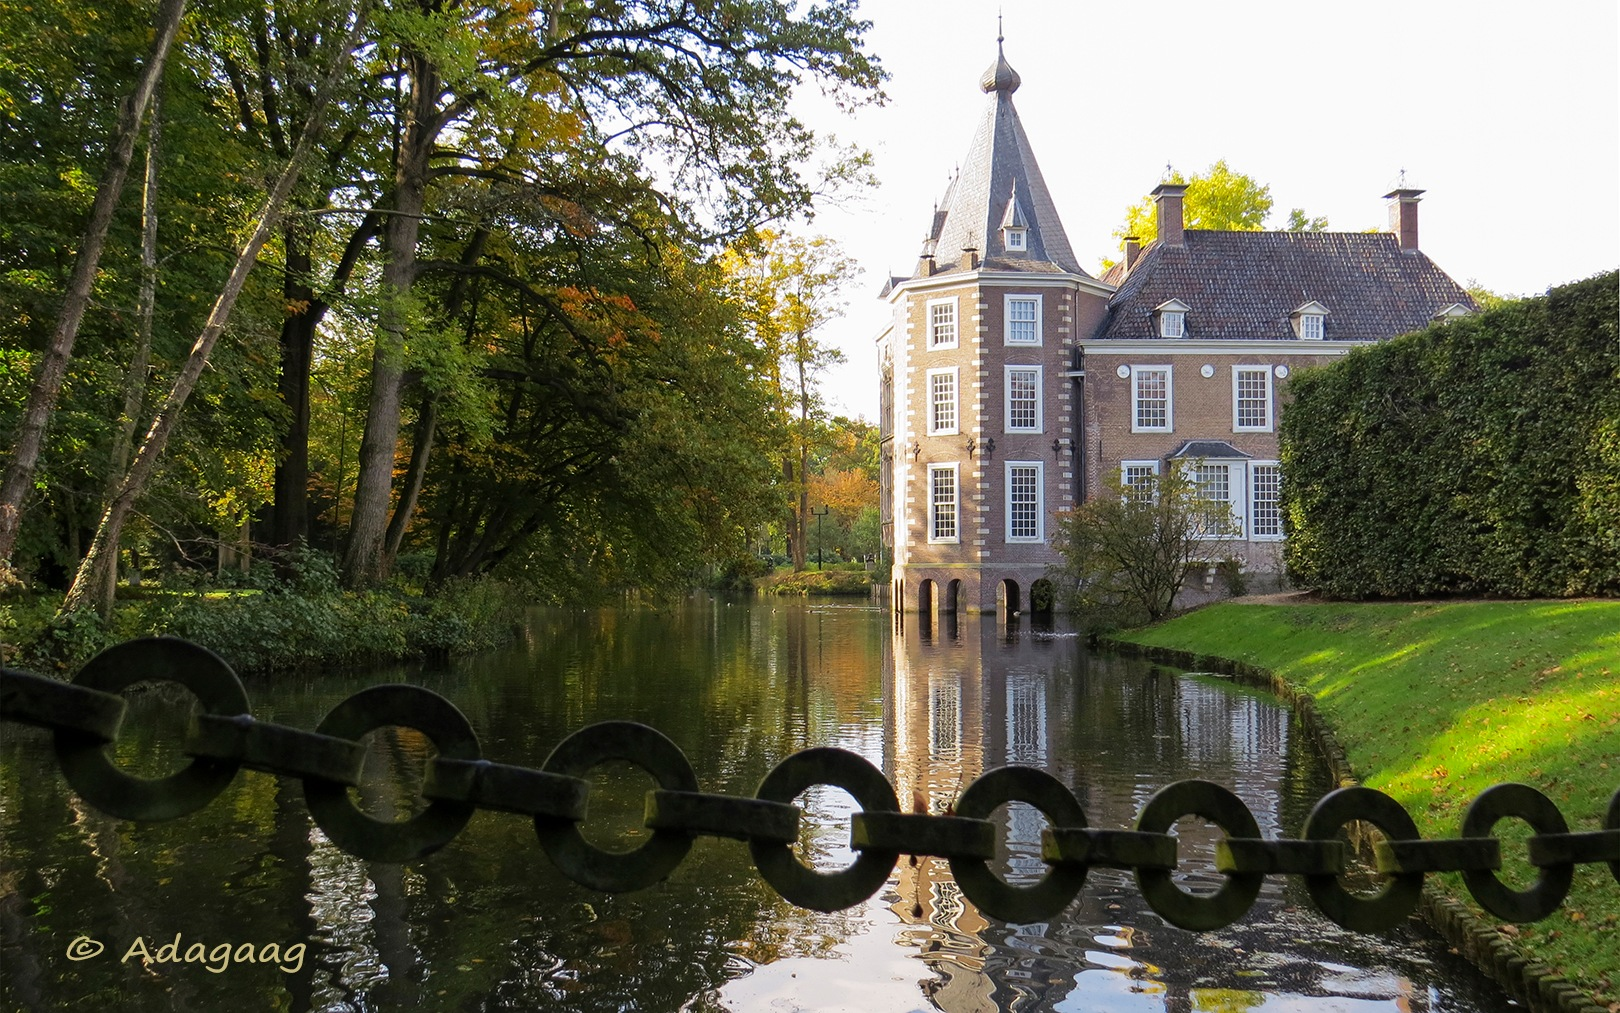 View of the old bridge to the Castle Nijenhuis by adagaag